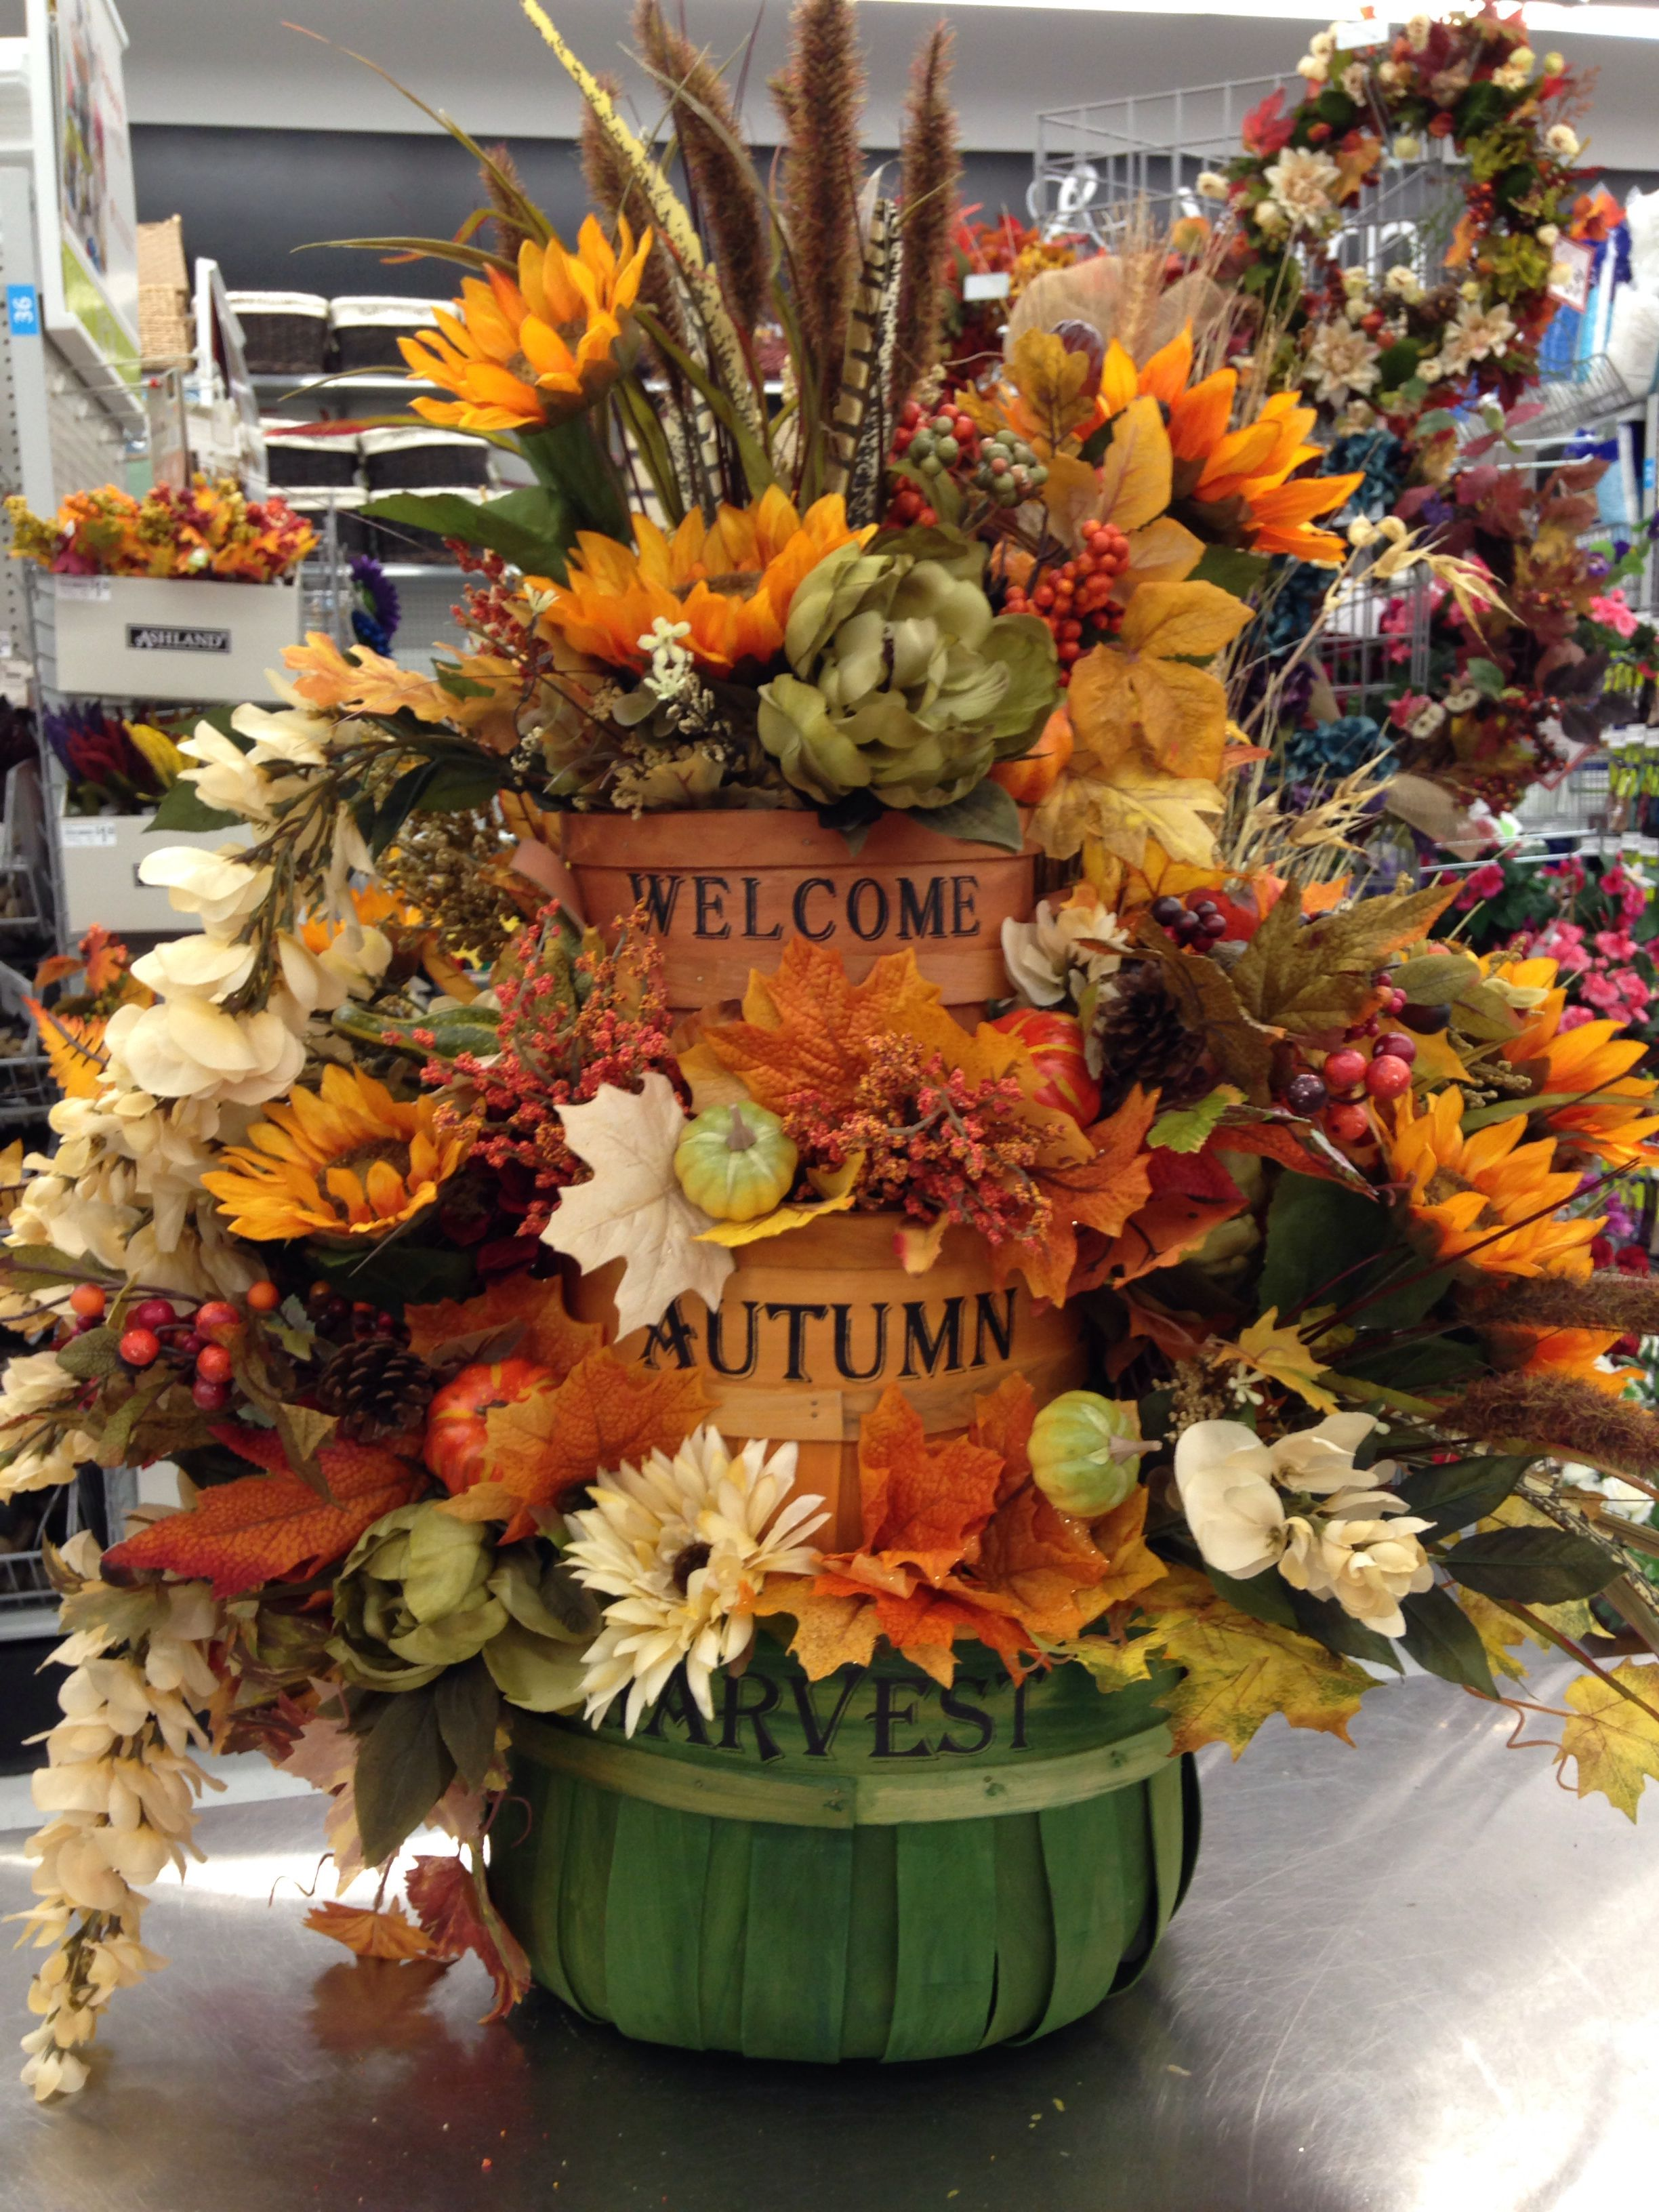 Fall Barrel Arrangement With Sunflowers And Fall Leaves 2014 Fall Flower Arrangements Fall Floral Arrangements Autumn Decorating